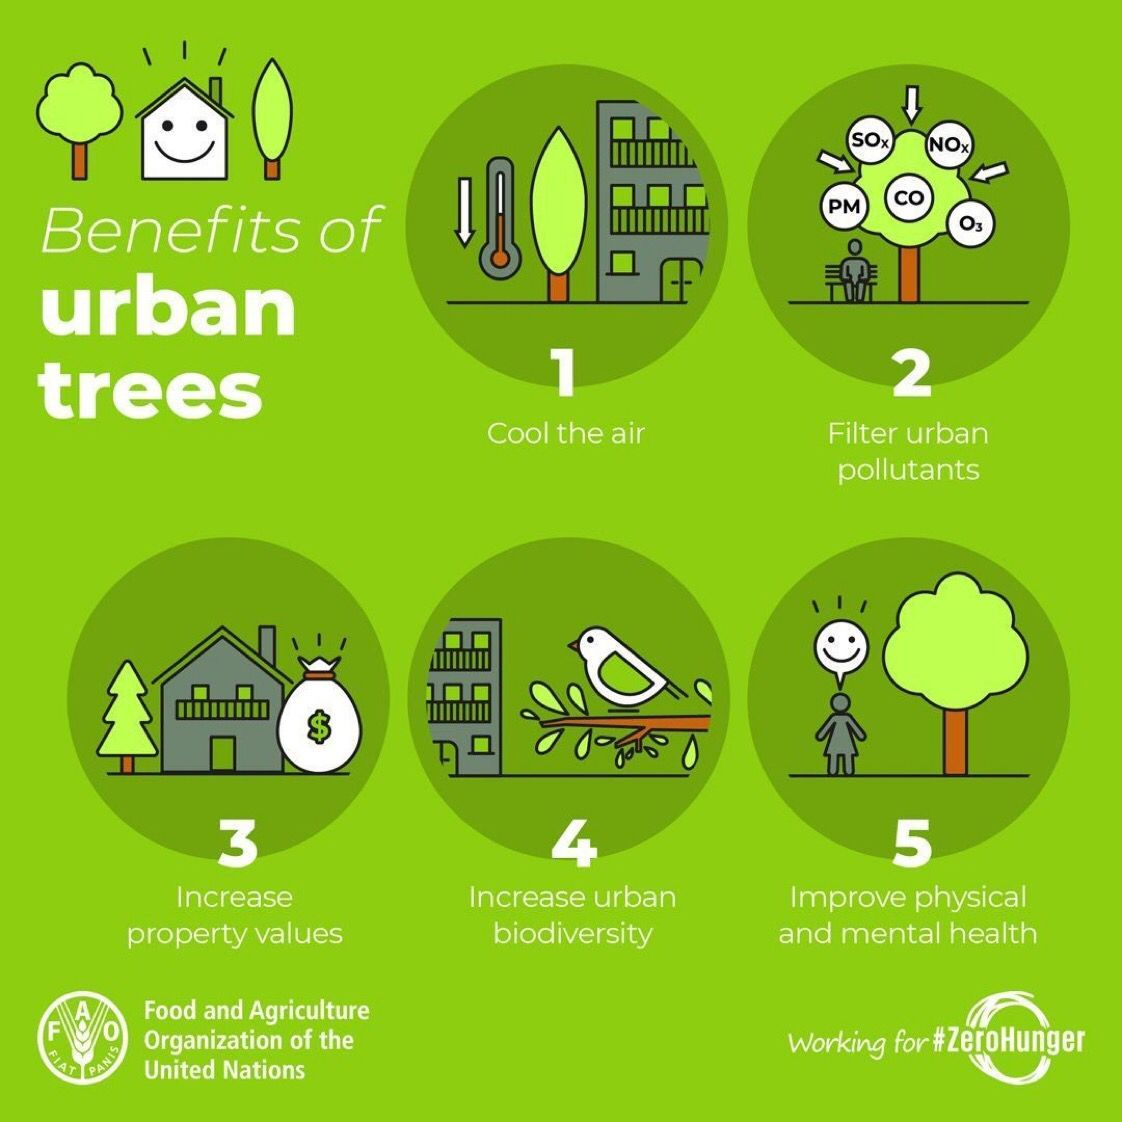 RT @FAO: #Trees and urban forests can make our #cities greener, healthier and happier places to live. 🌳🏙 🌲 🌇🌳 https://t.co/K0X6vr1tvr